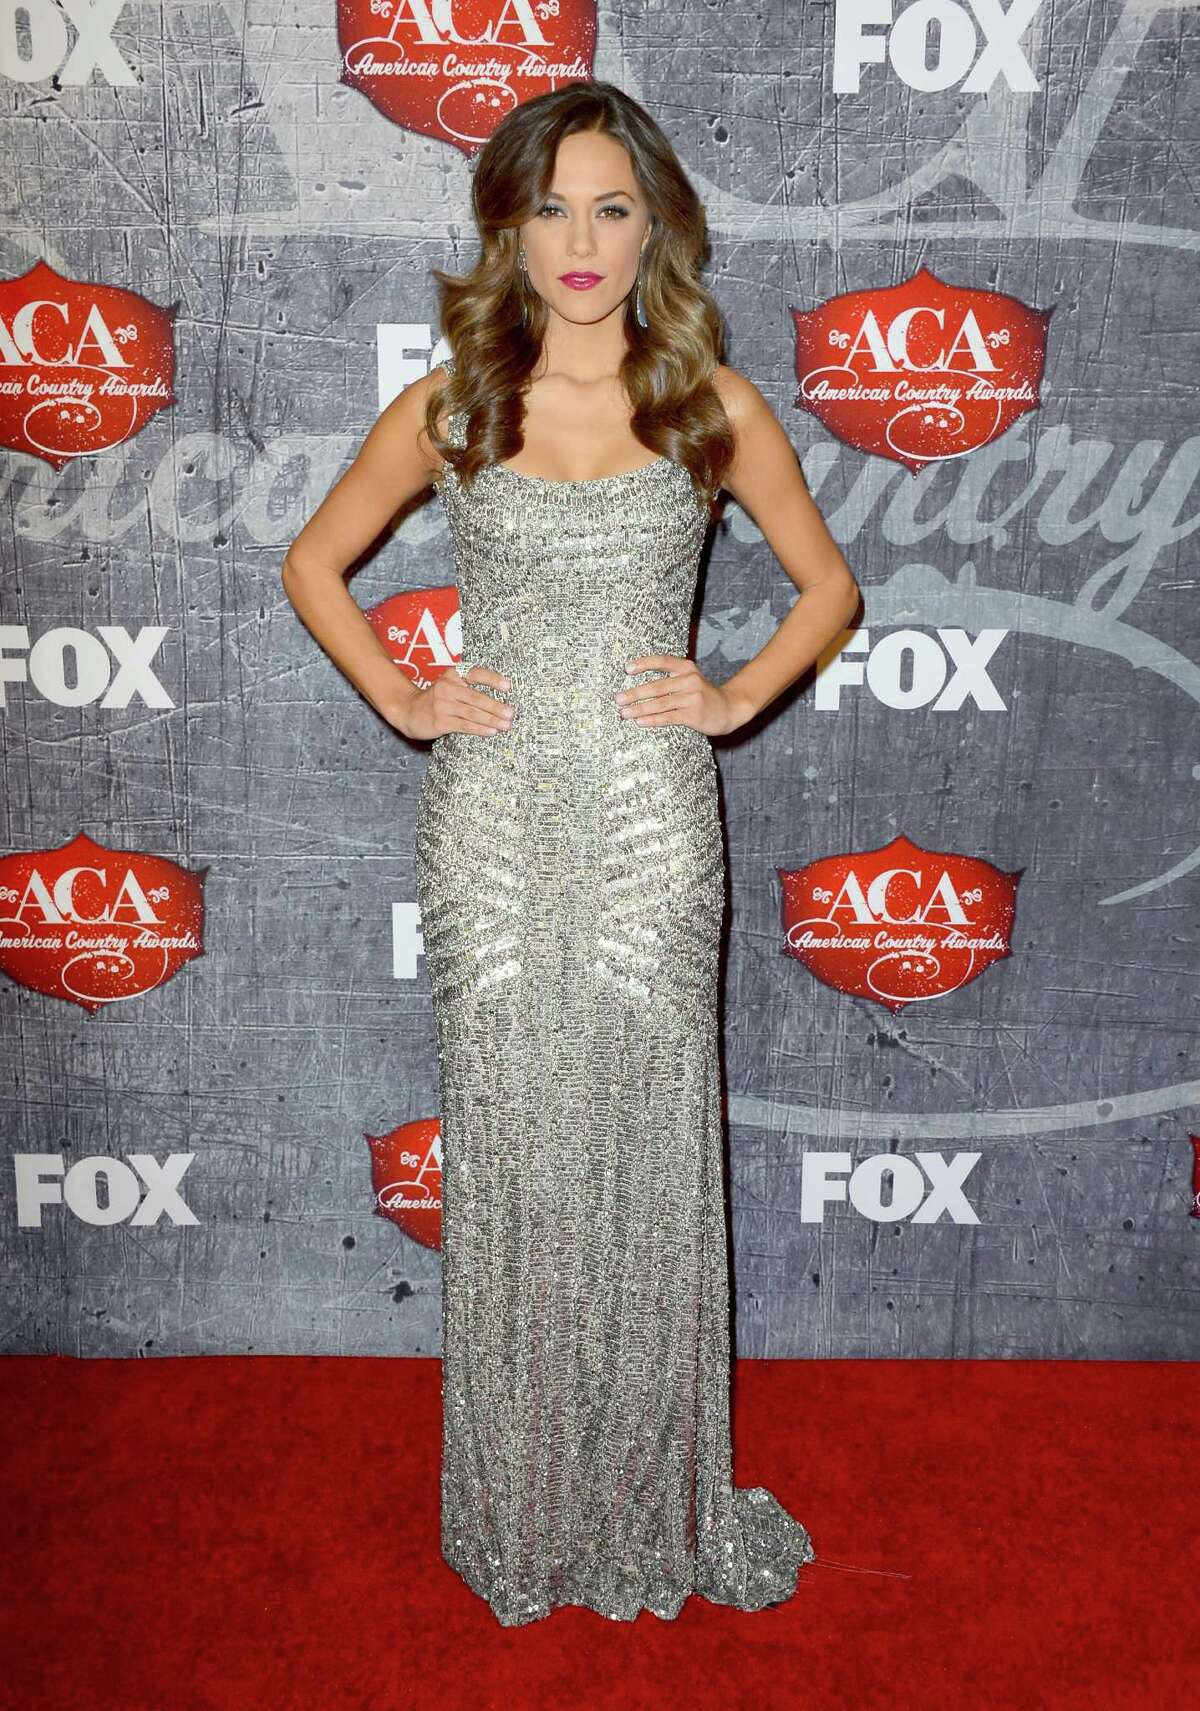 Singer Jana Kramer arrives at the 2012 American Country Awards at the Mandalay Bay Events Center in Las Vegas on Dec. 10, 2012. The ACA is the fourth major country music awards show of the year and the youngest; this Fox TV creation began in 2010.